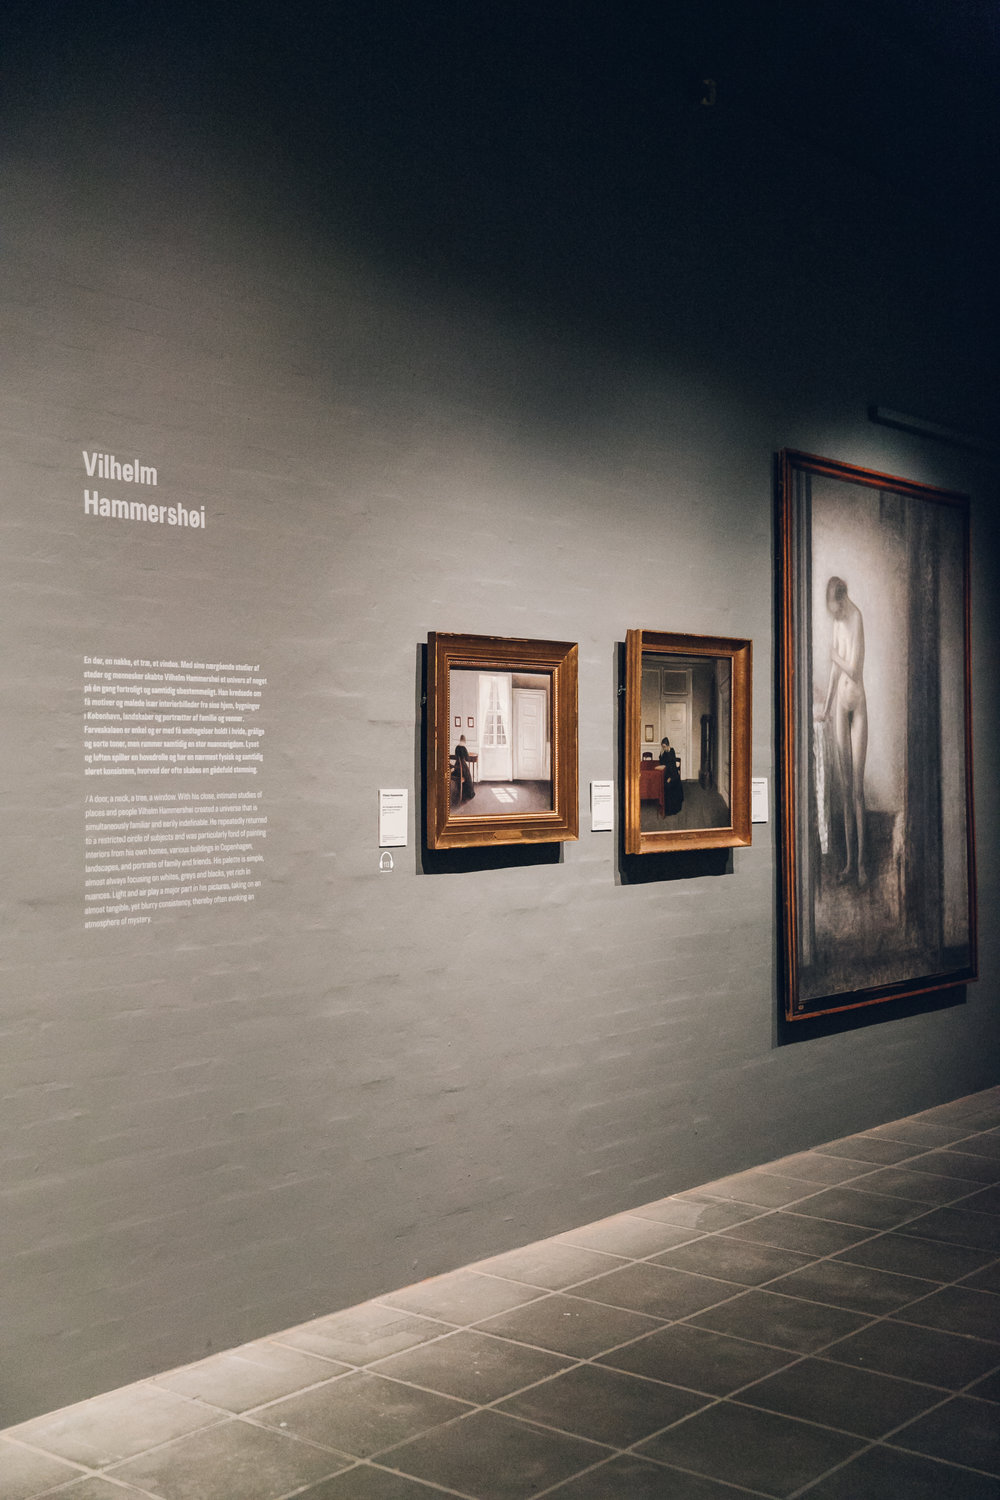 Vilhelm Hammershoi at SMK in Copenhagen.